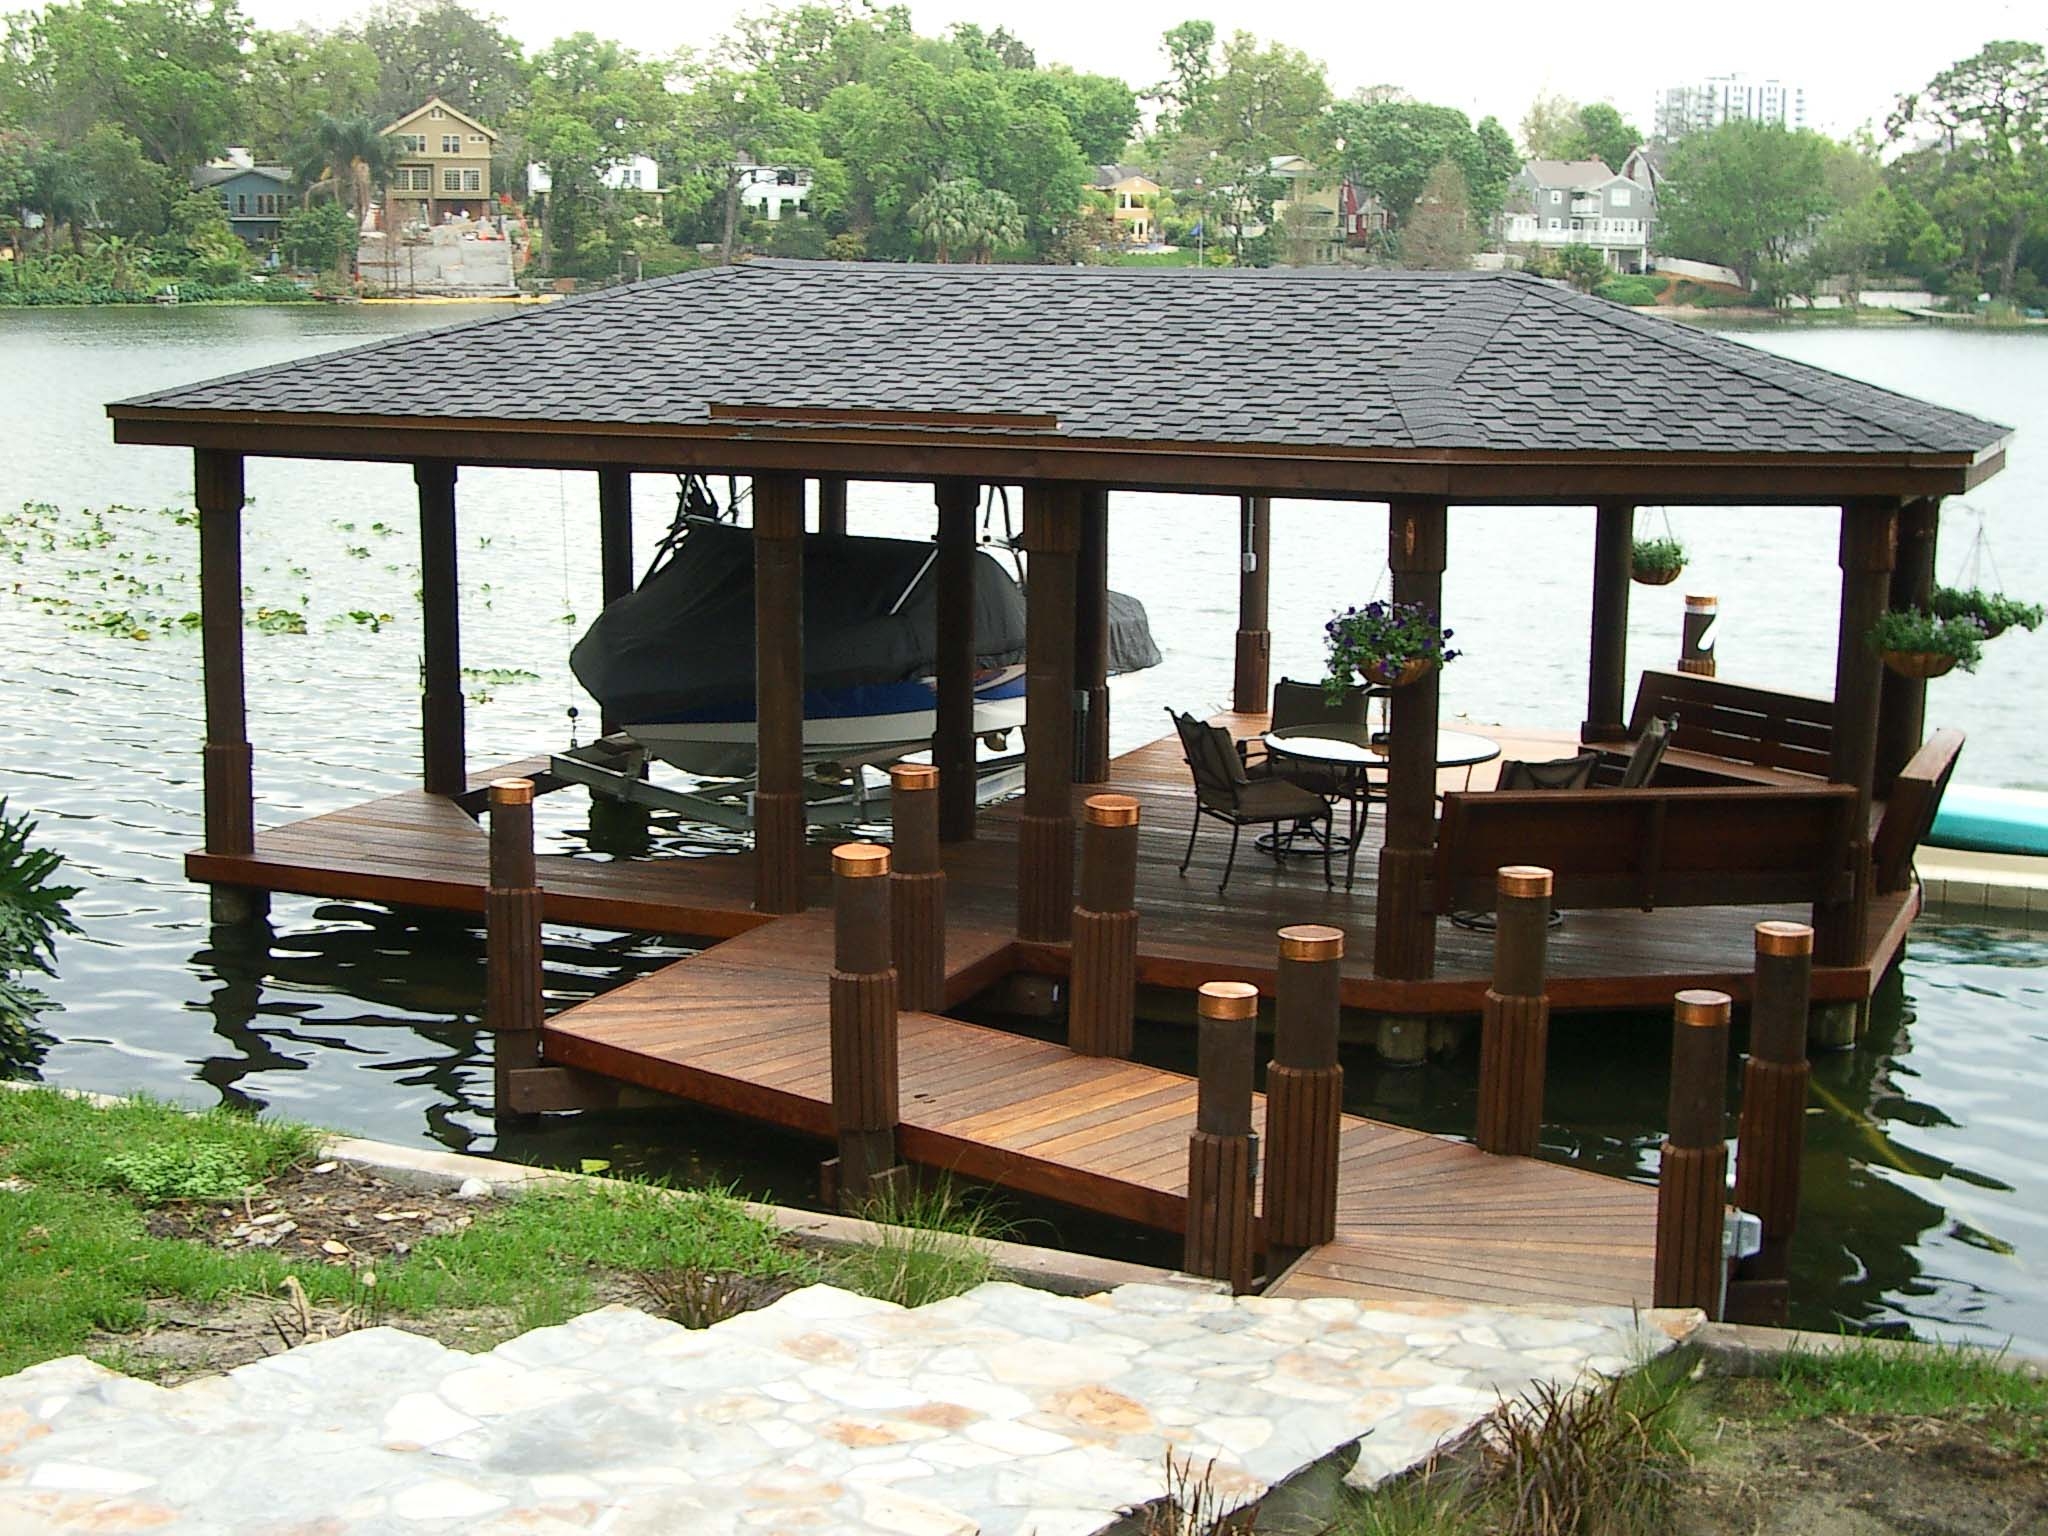 Designs On House And Boat Dock Plans Boat Dock House Designs Boat Dock